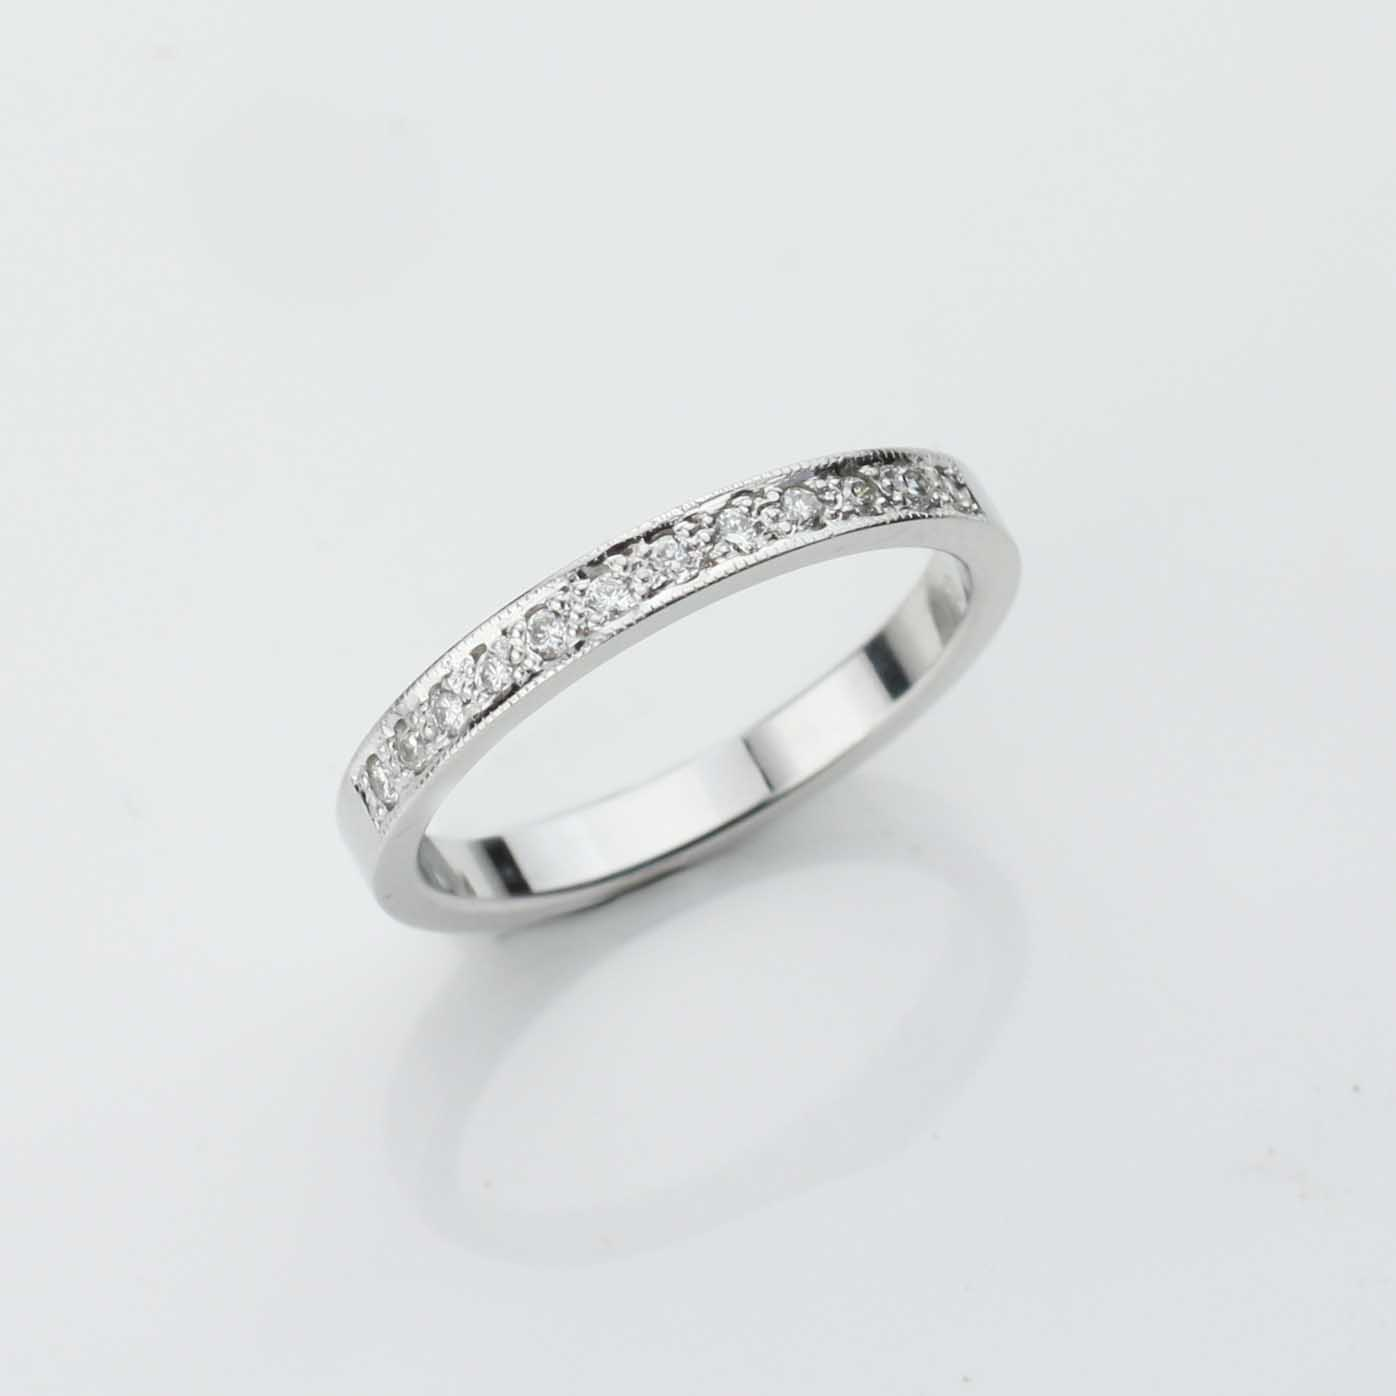 18ct white gold hand made wedding ring Vintage Adorn Jewels